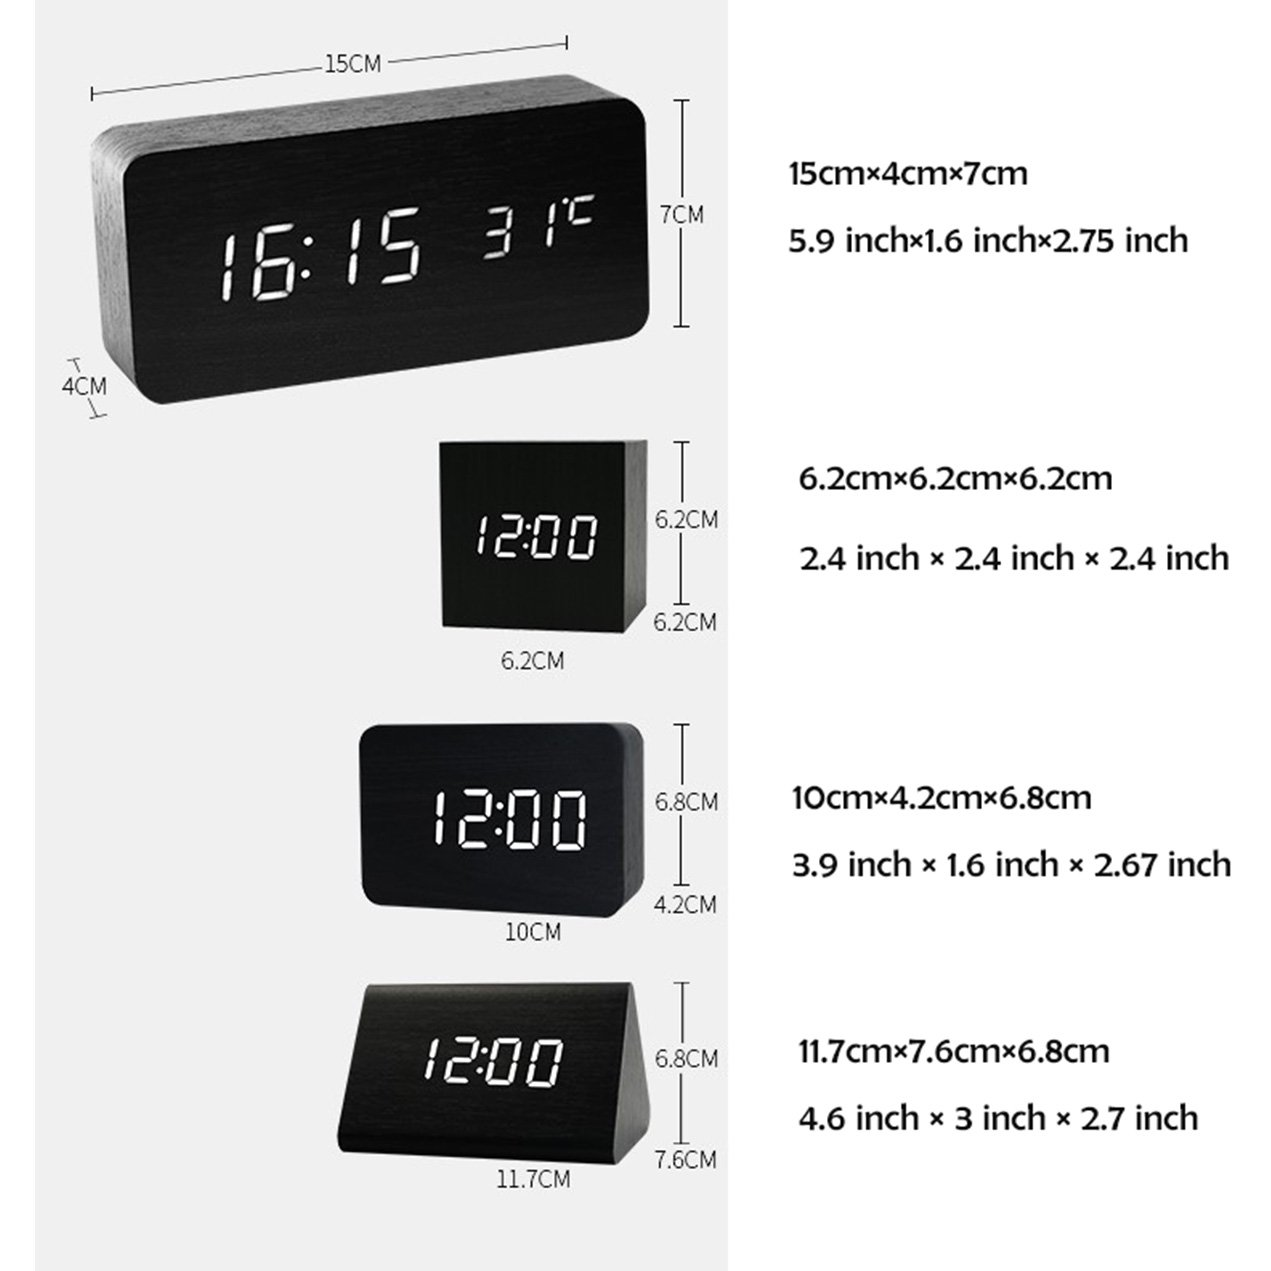 Alarm Clock,Wood Digital Alarm Clock, Wooden Wake Up Bedside Travel Alarm Clock with Time Temperature Humidity Sound Control Led Alarm Clock for Home Bedroom Office-triangle by Girlsight (Image #2)